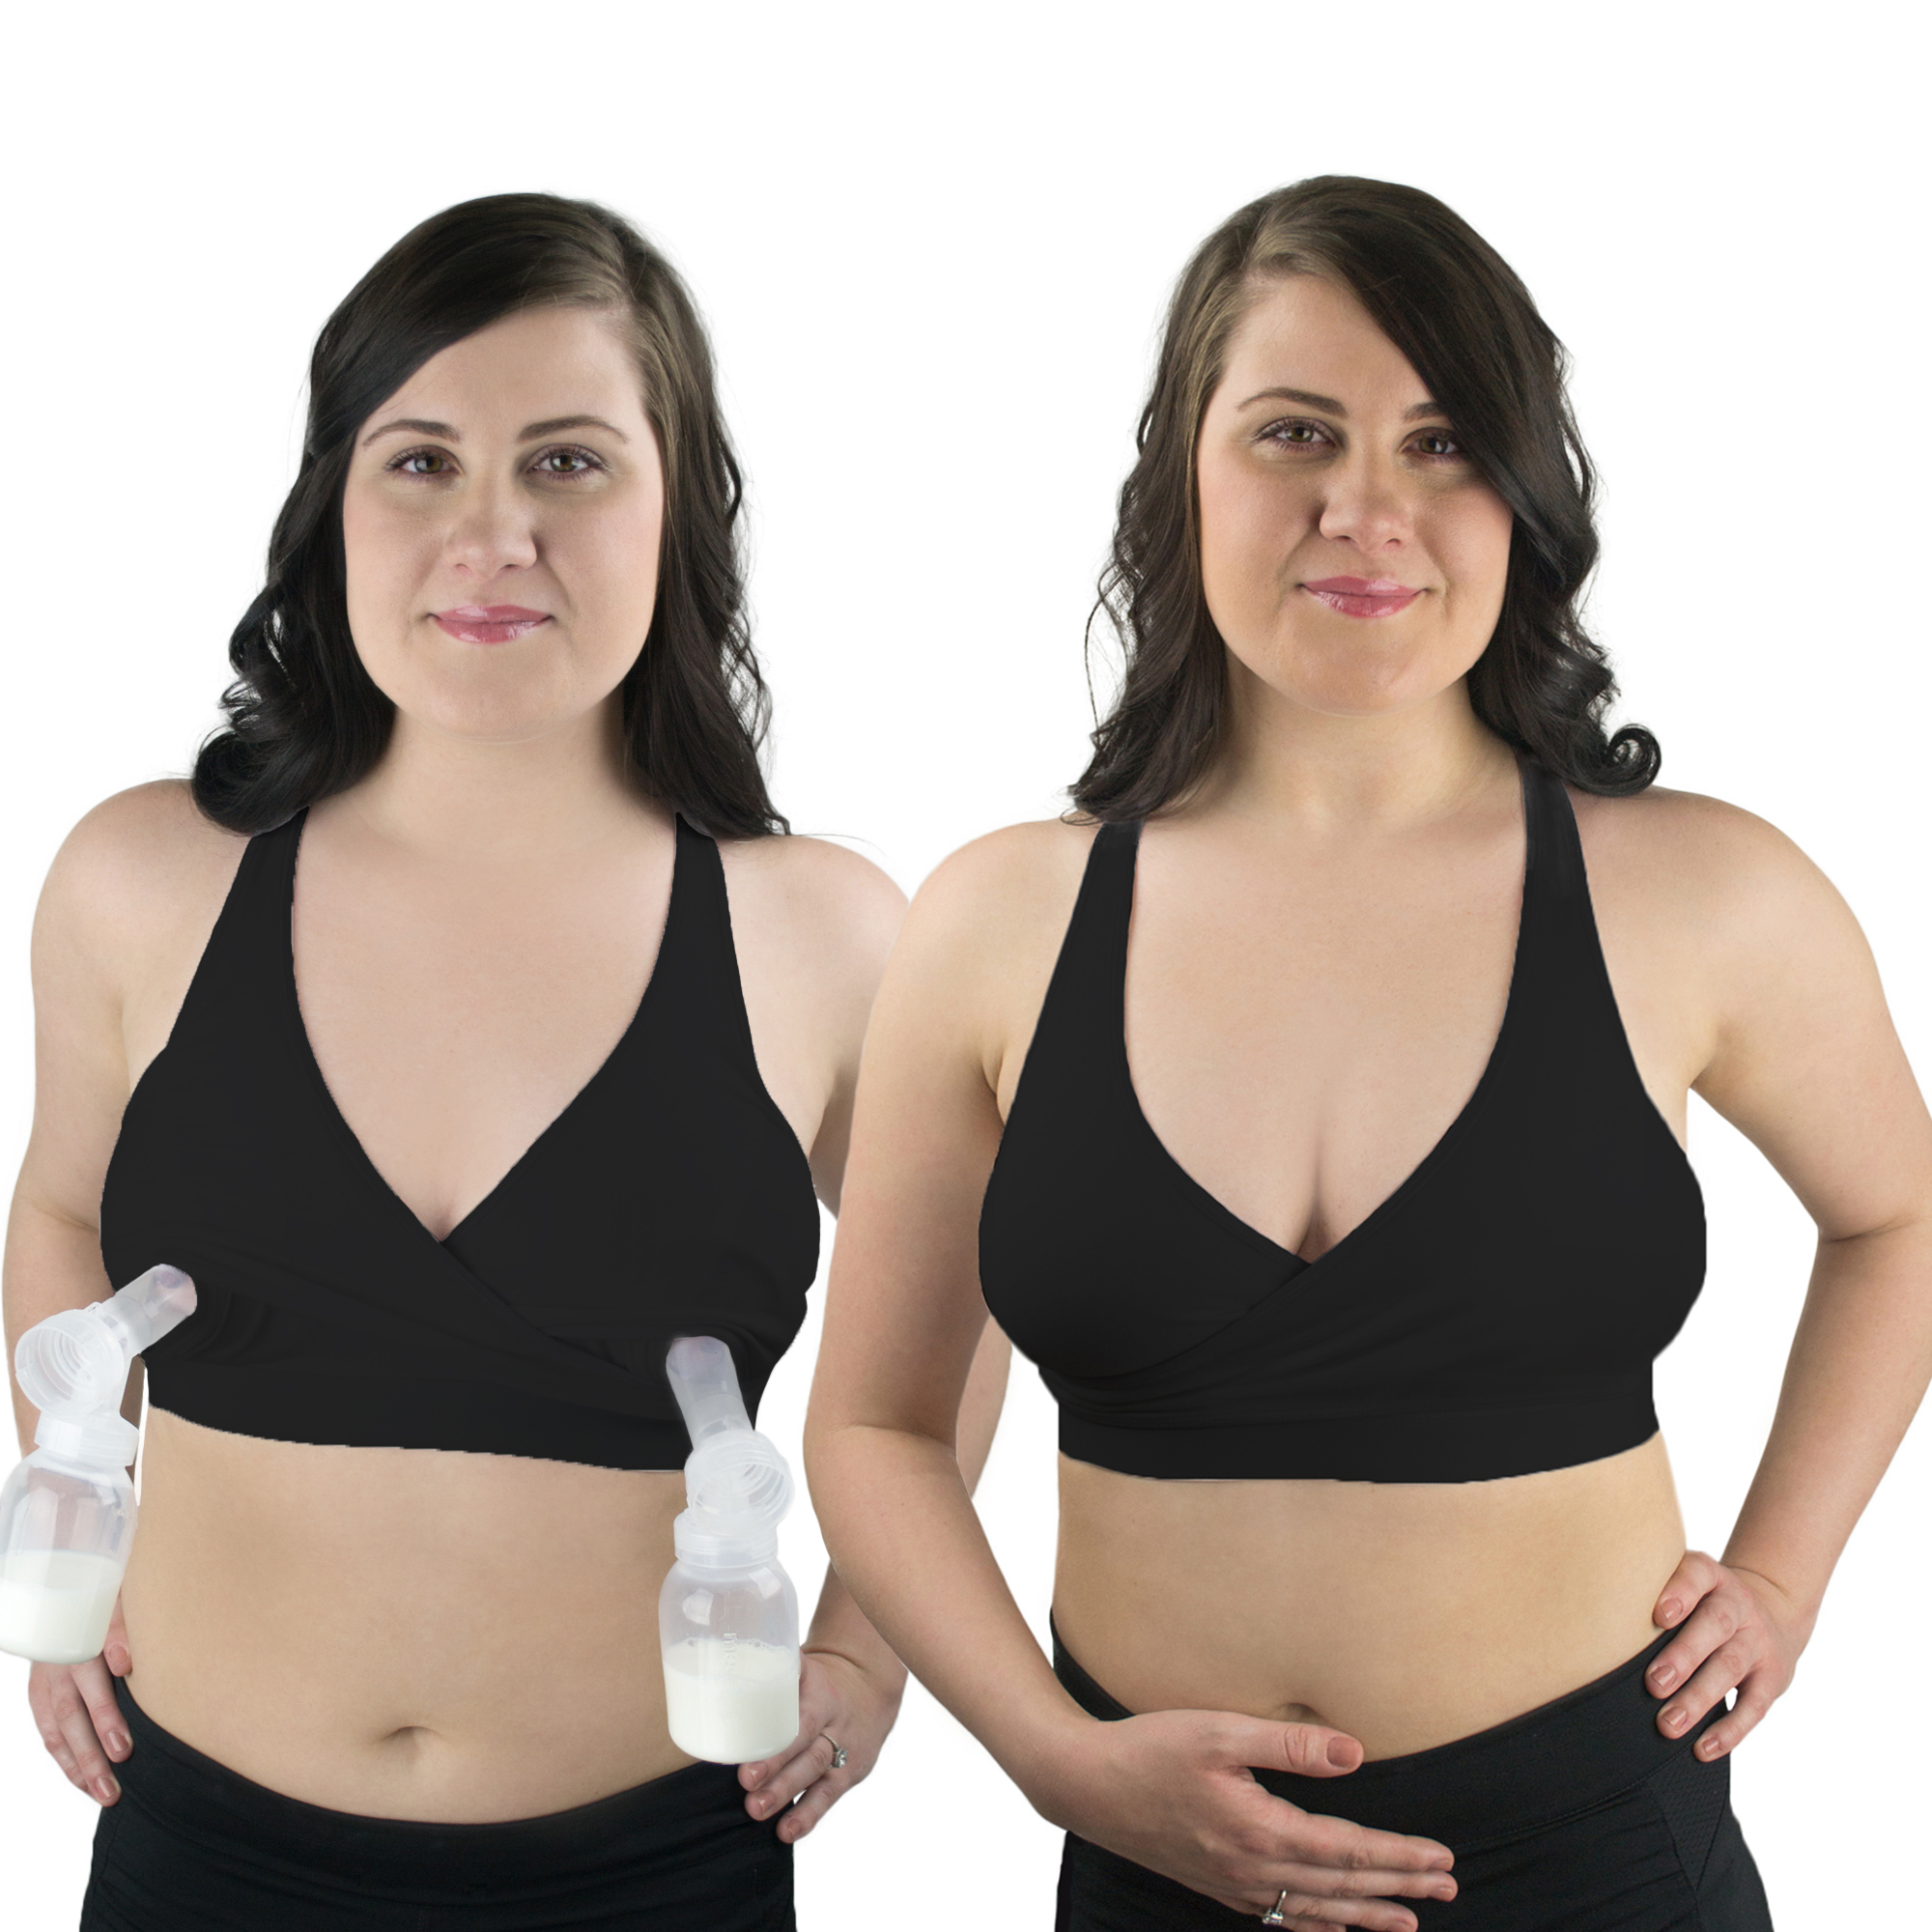 Rumina's Pump&Nurse Racerback all-in-one Nursing Bra for maternity, nursing with built in hands-free pumping bra